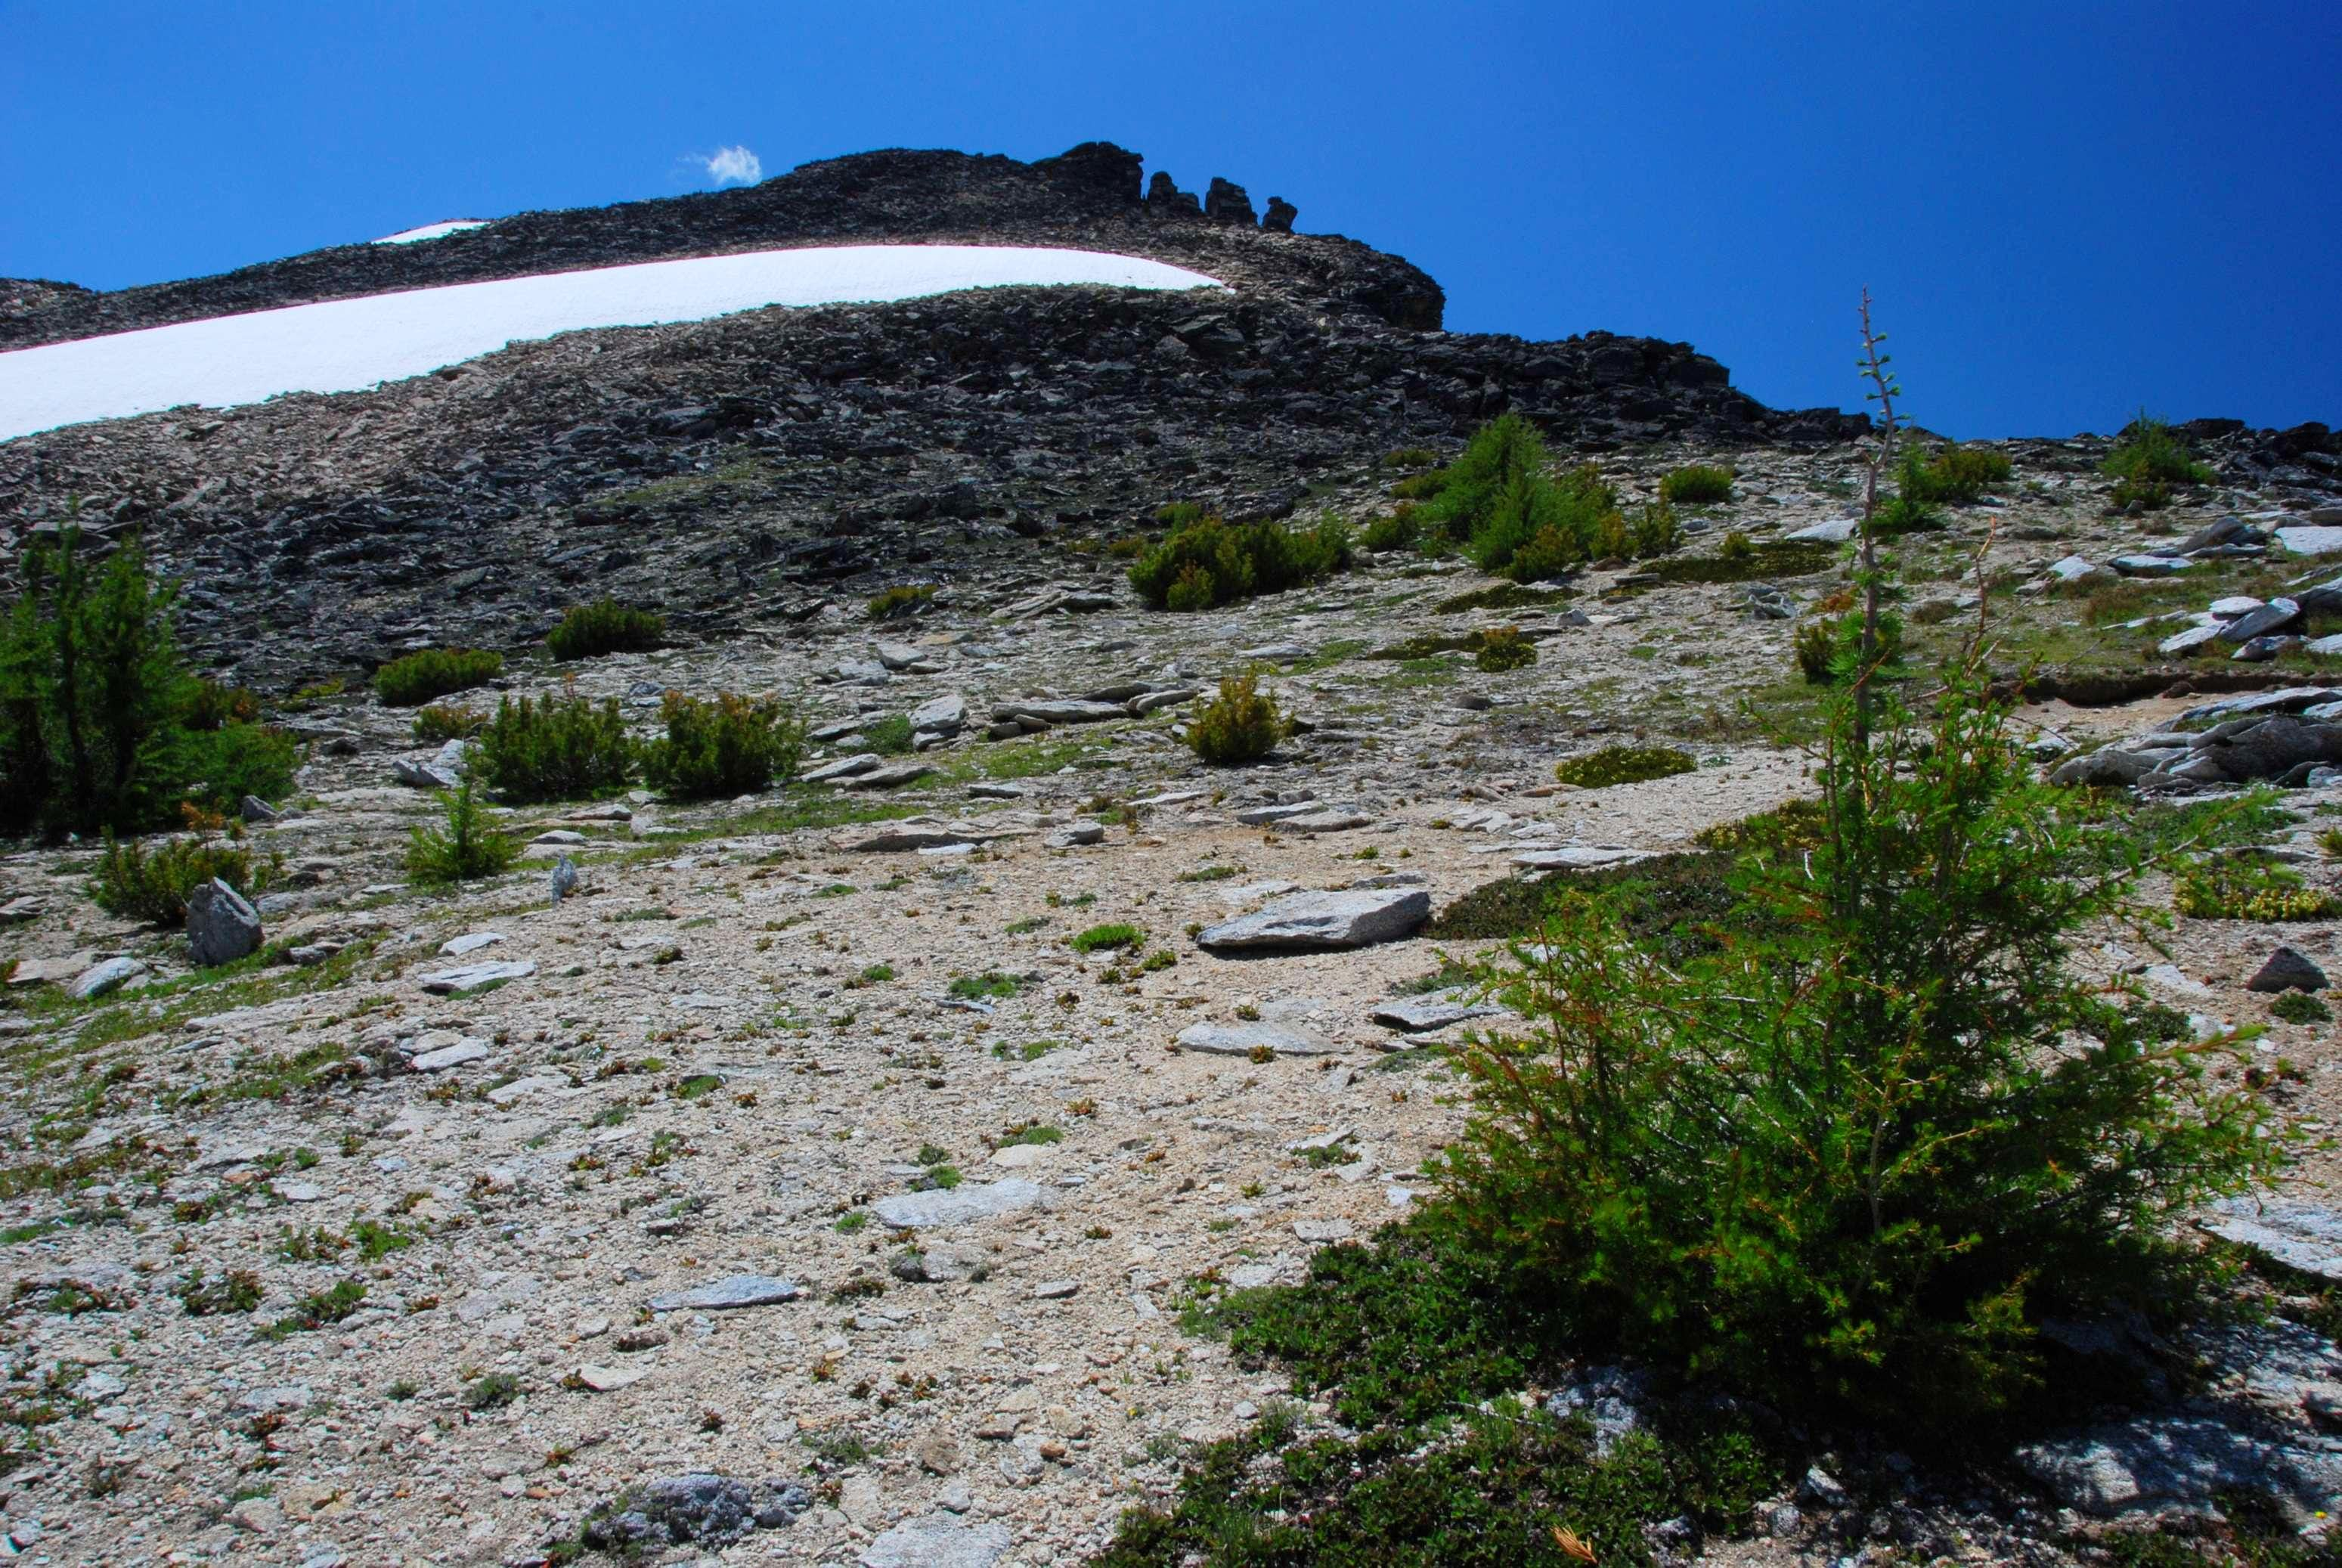 Point 9617 - Little Tin Cup Peak